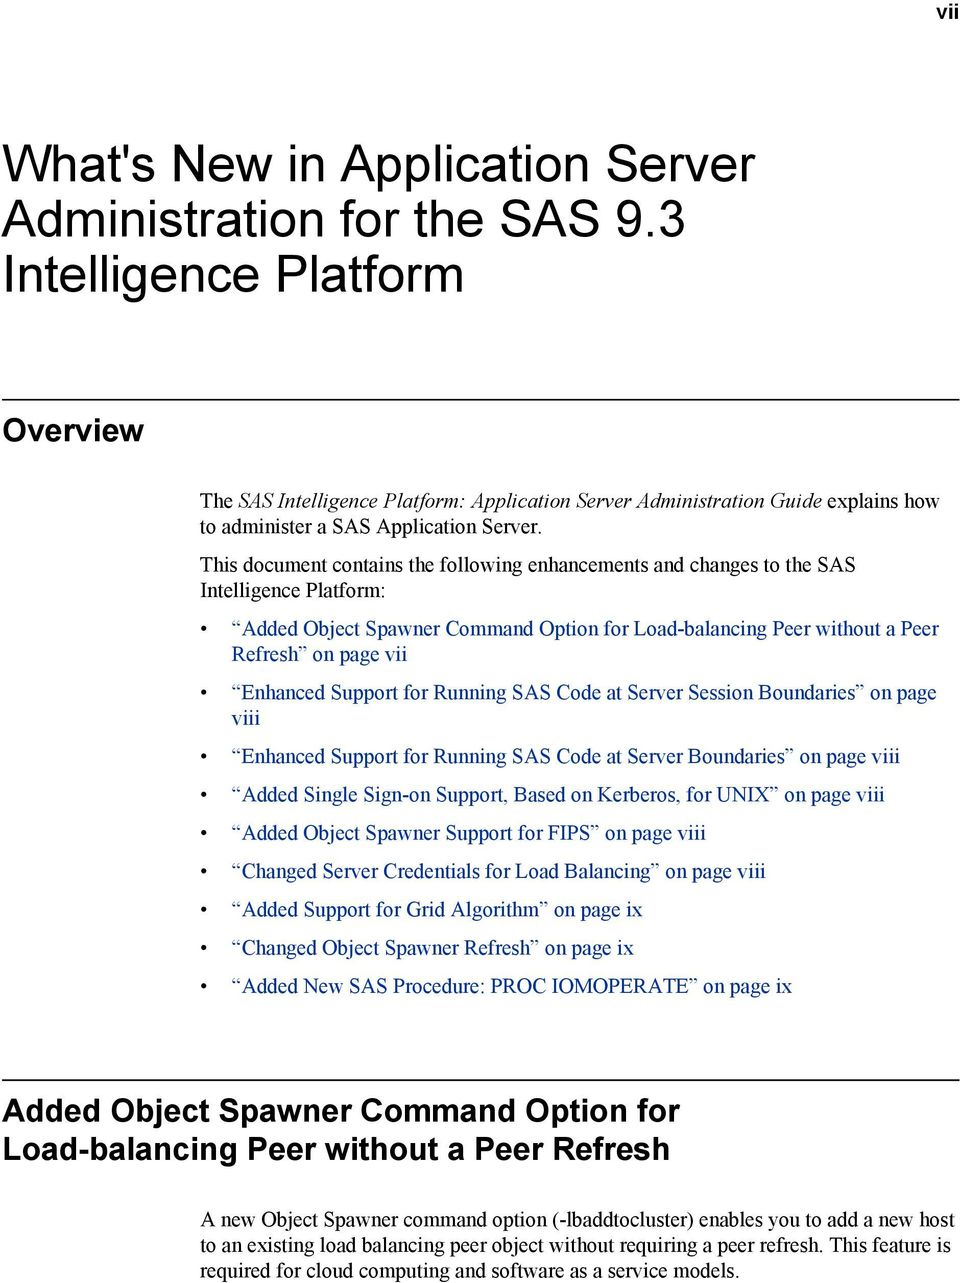 This document contains the following enhancements and changes to the SAS Intelligence Platform: Added Object Spawner Command Option for Load-balancing Peer without a Peer Refresh on page vii Enhanced